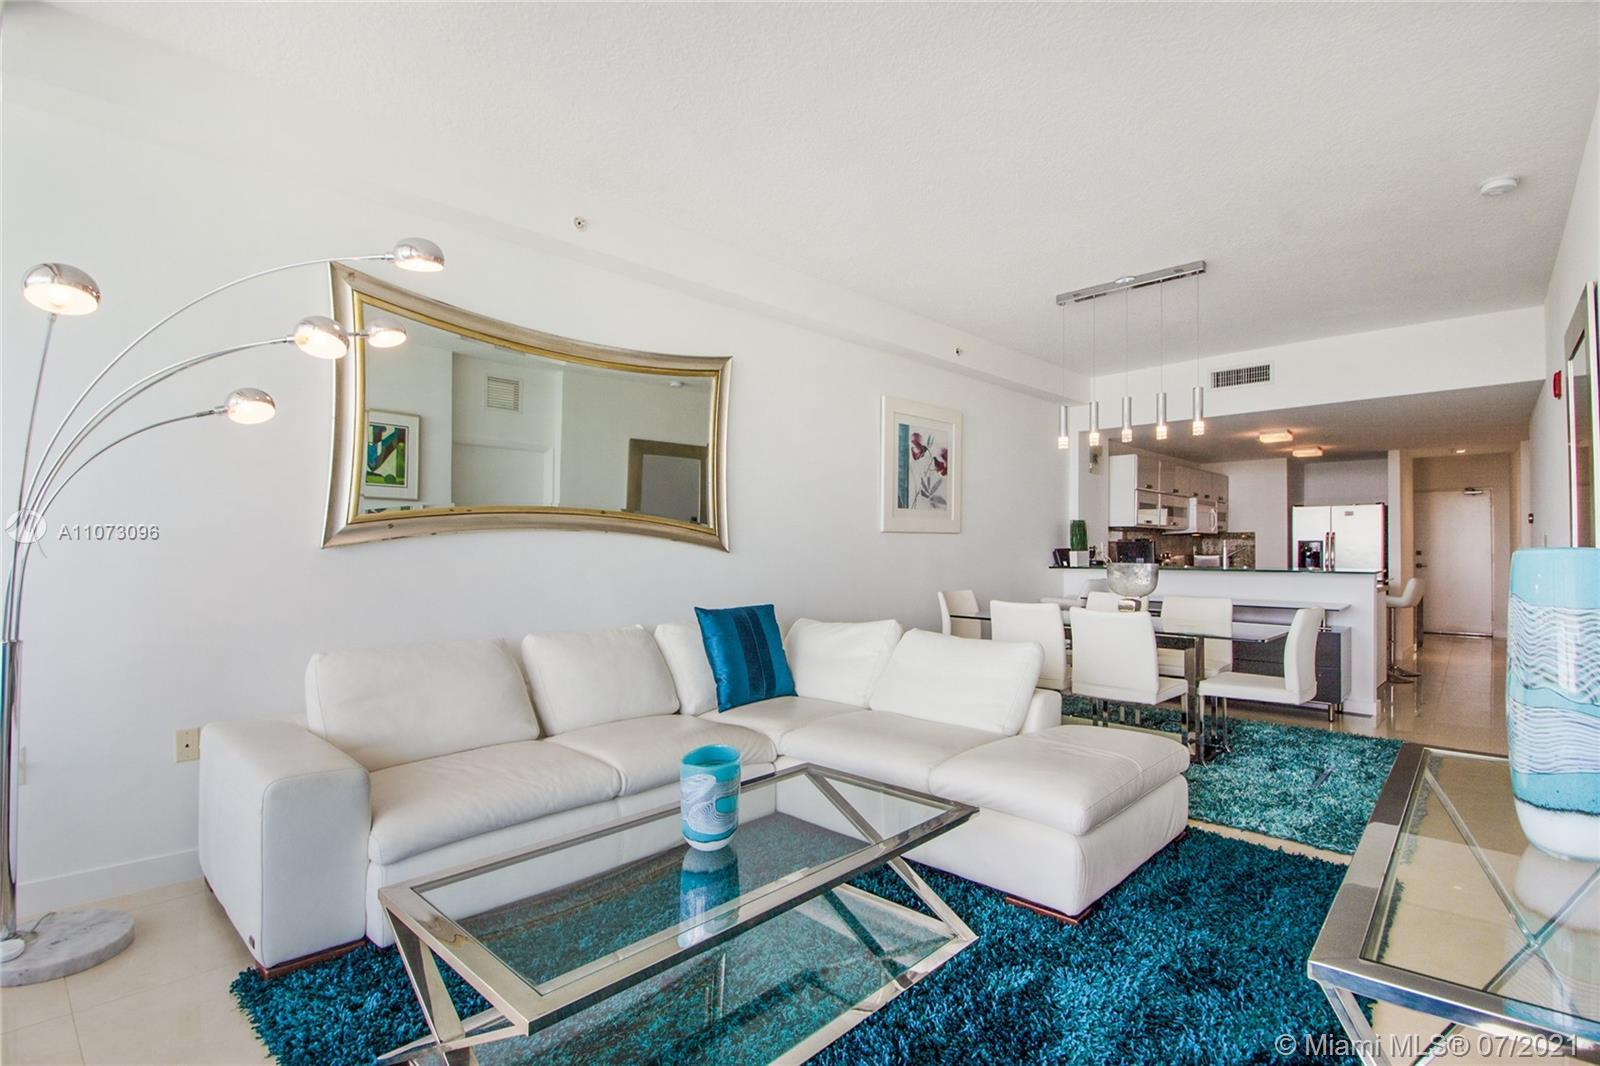 UNIT WILL SELL FAST!!! BEST LINE 2/2 + DEN AT THE REGATTA MIAMI BEACH. UNIT IS BEING SOLD FURNISHED